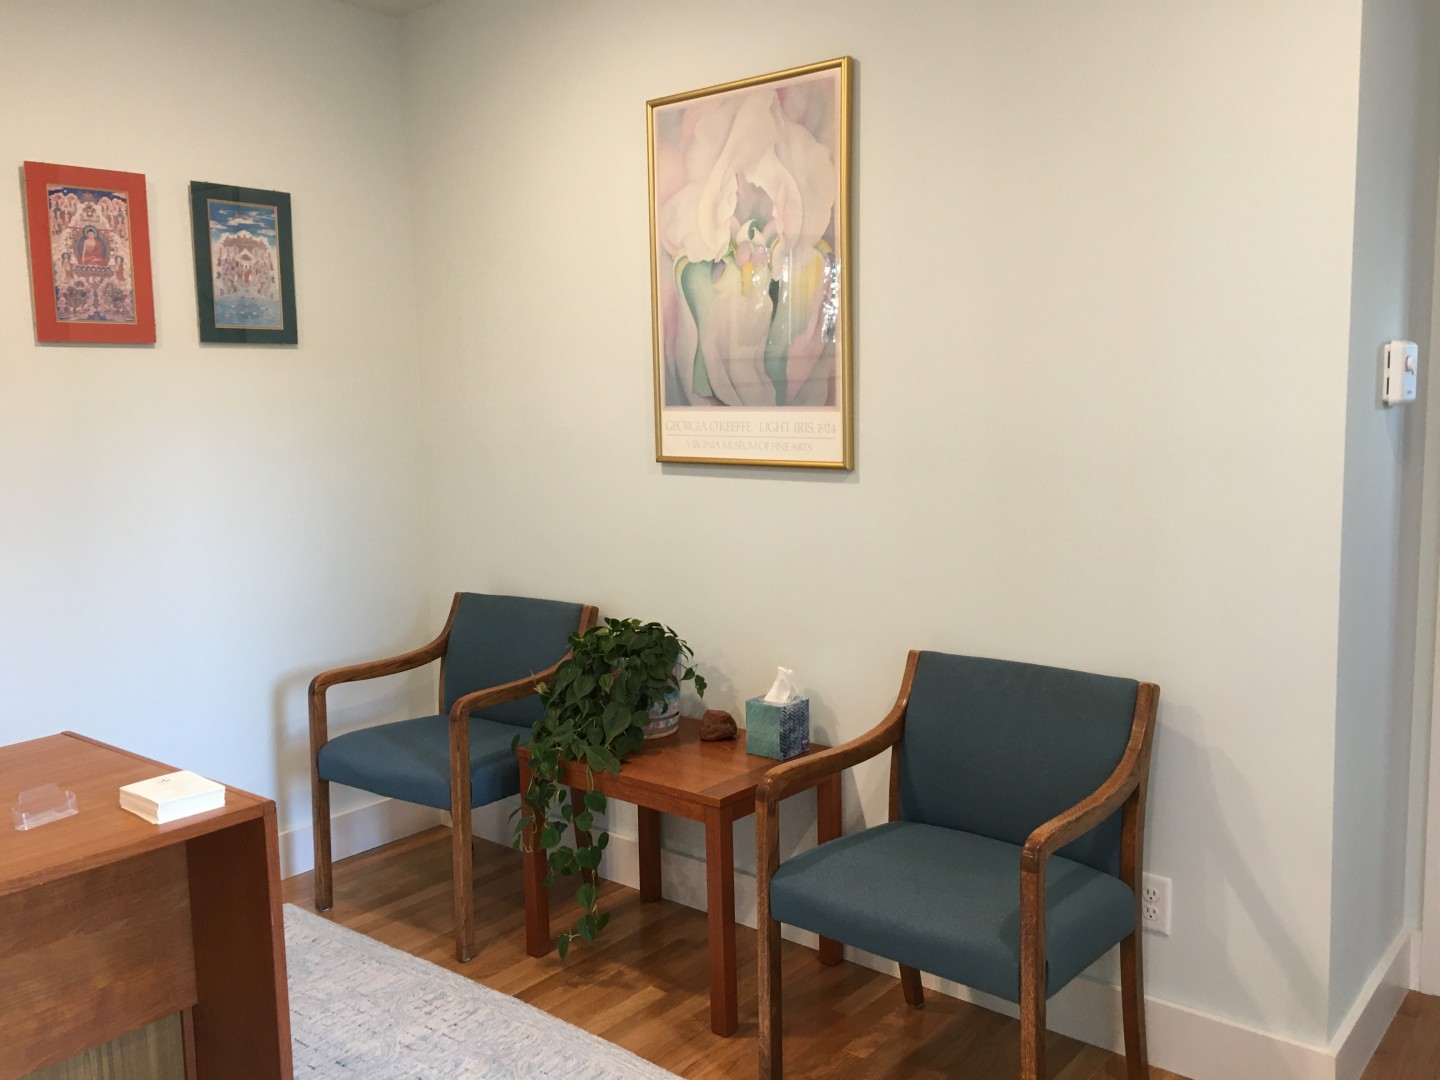 Photo Gallery - Ellen Arndorfer, Licensed Acupuncturist in Viroqua, WI